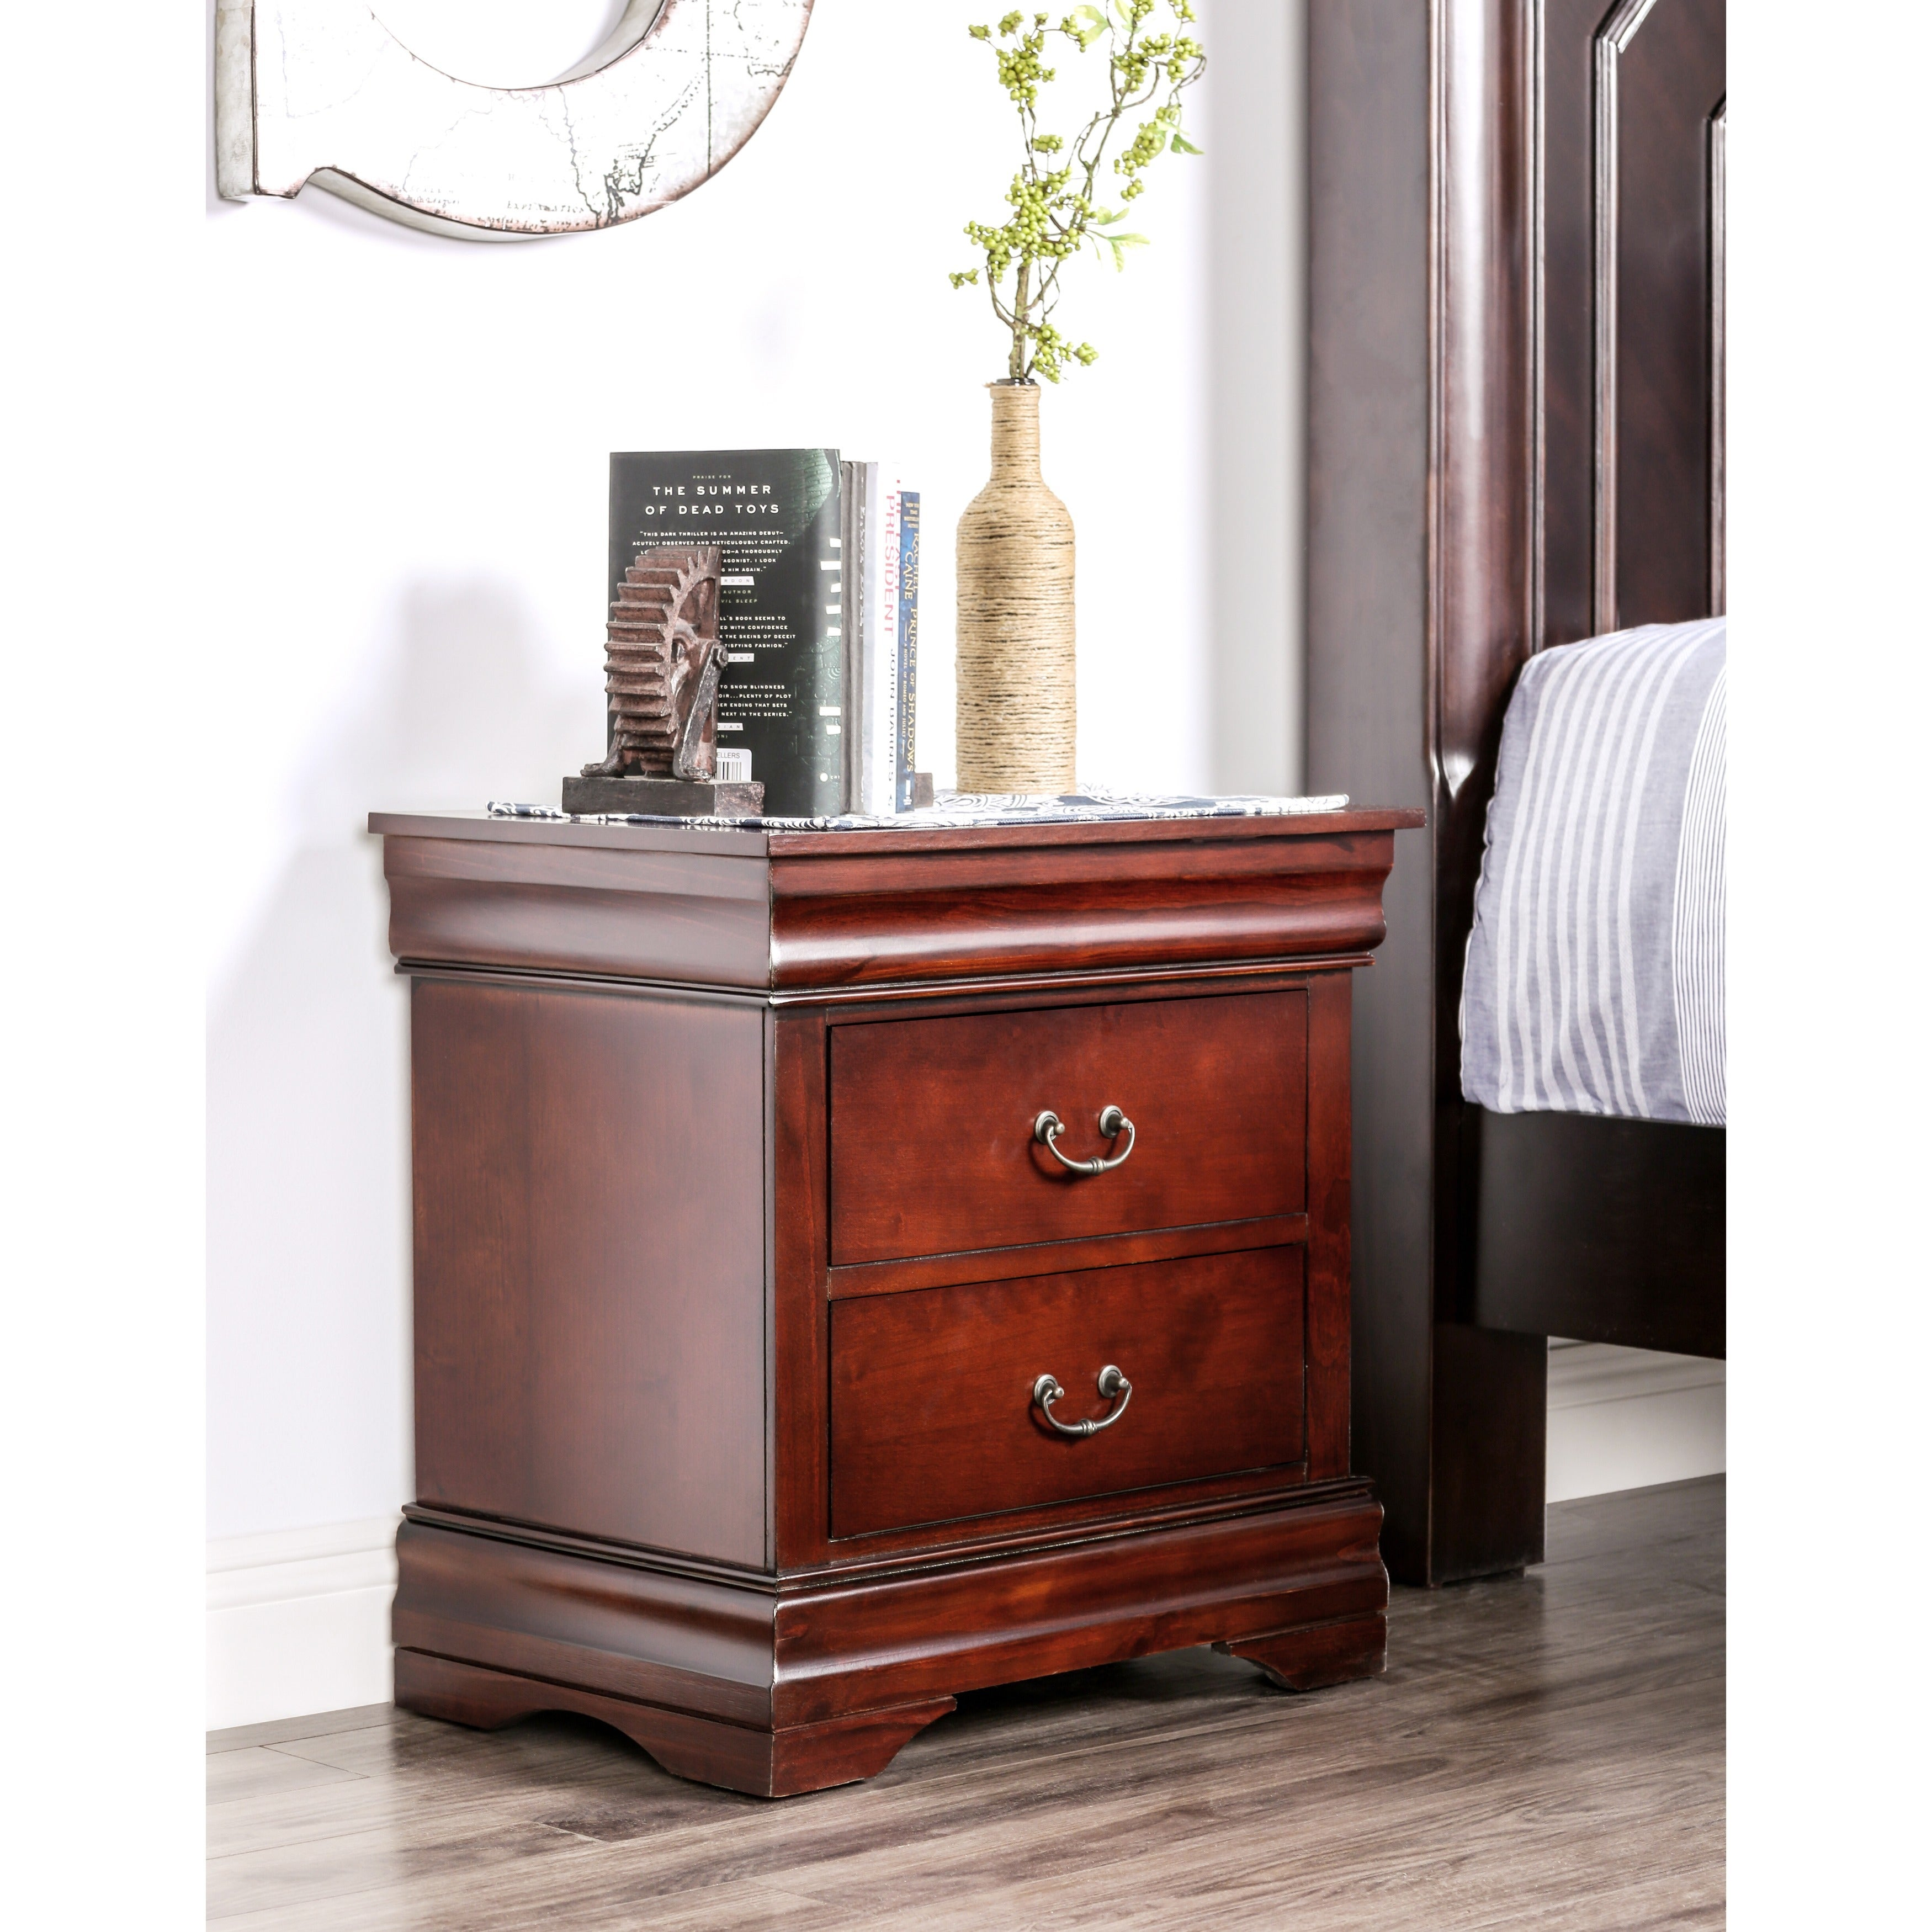 Furniture Of America Laurelle Dark Cherry Finish 2 Drawer Nightstand